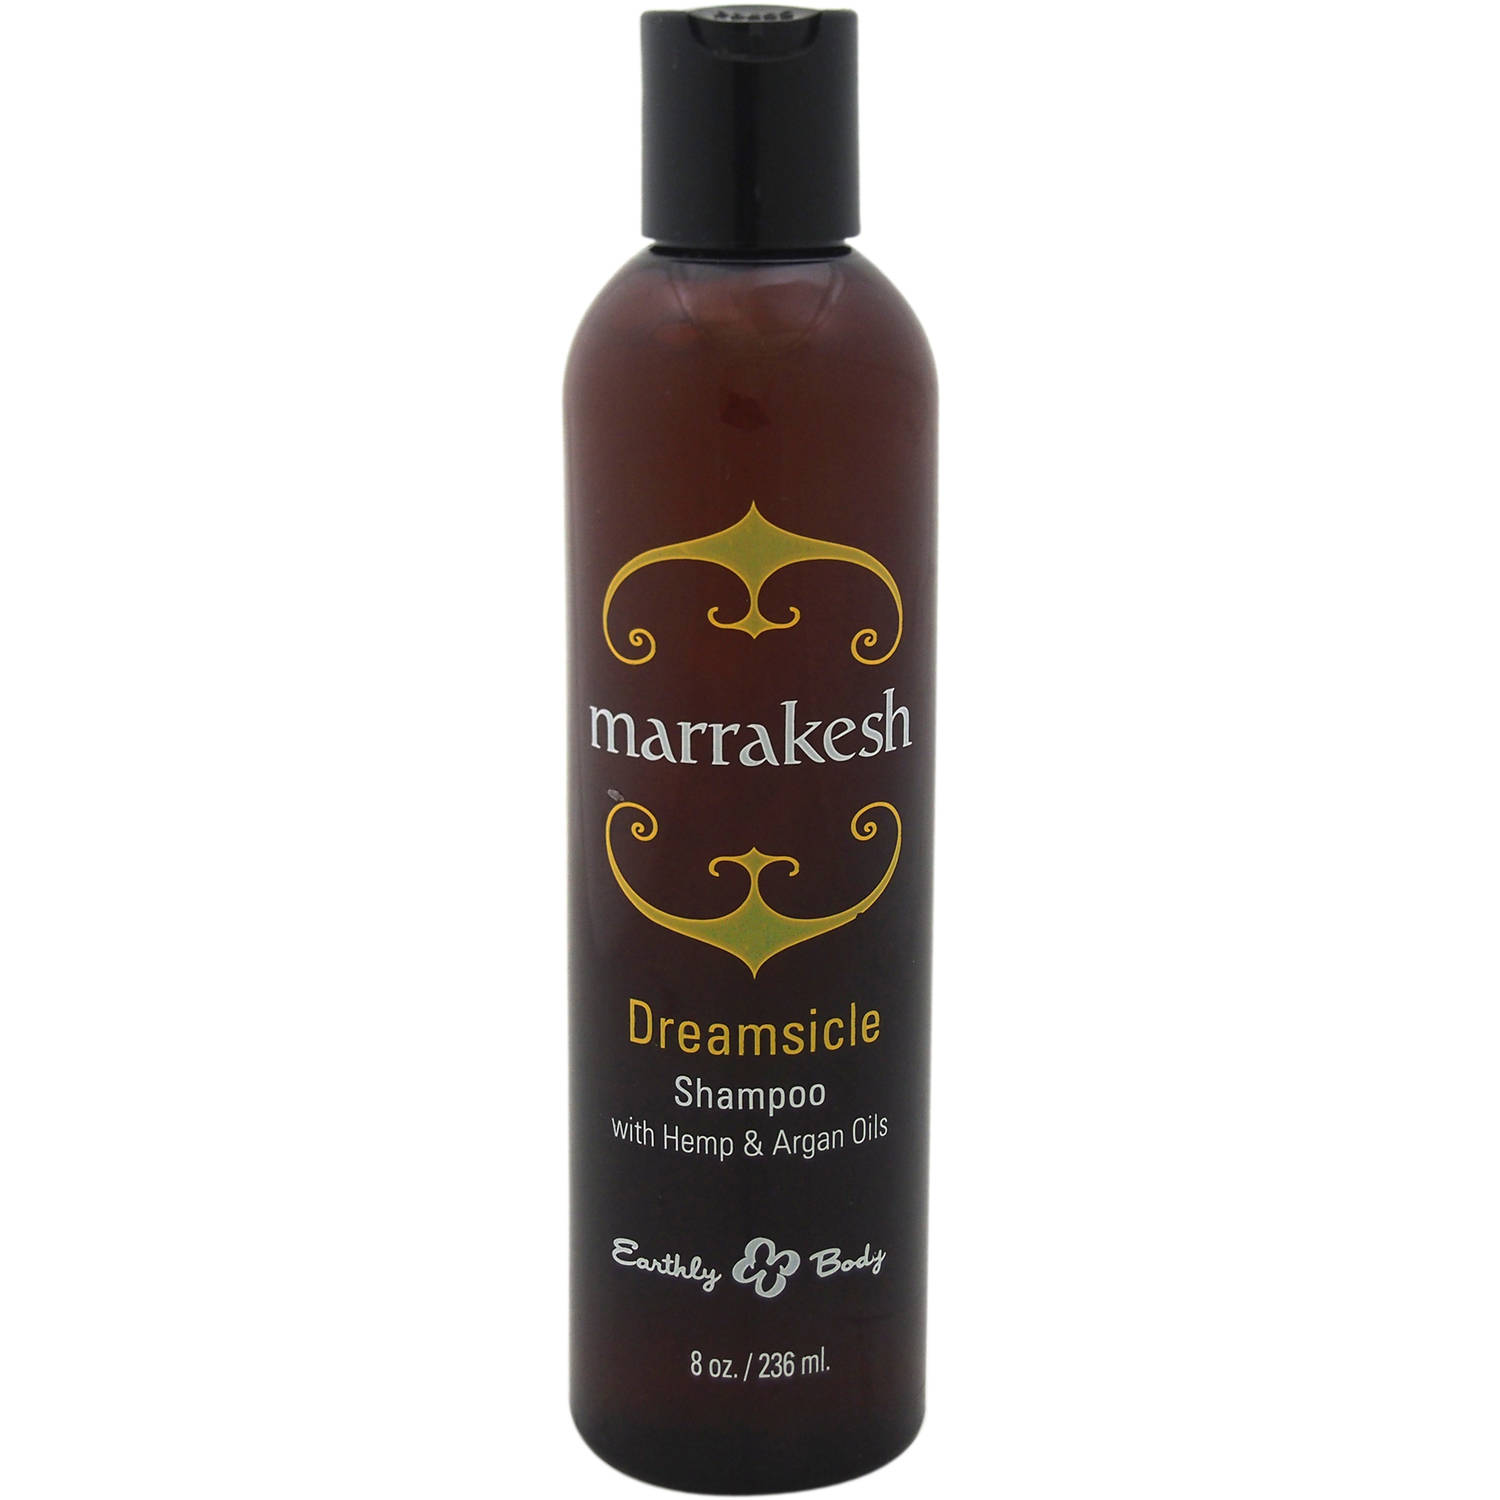 Marrakesh Dreamsicle Shampoo for Unisex, 8 oz